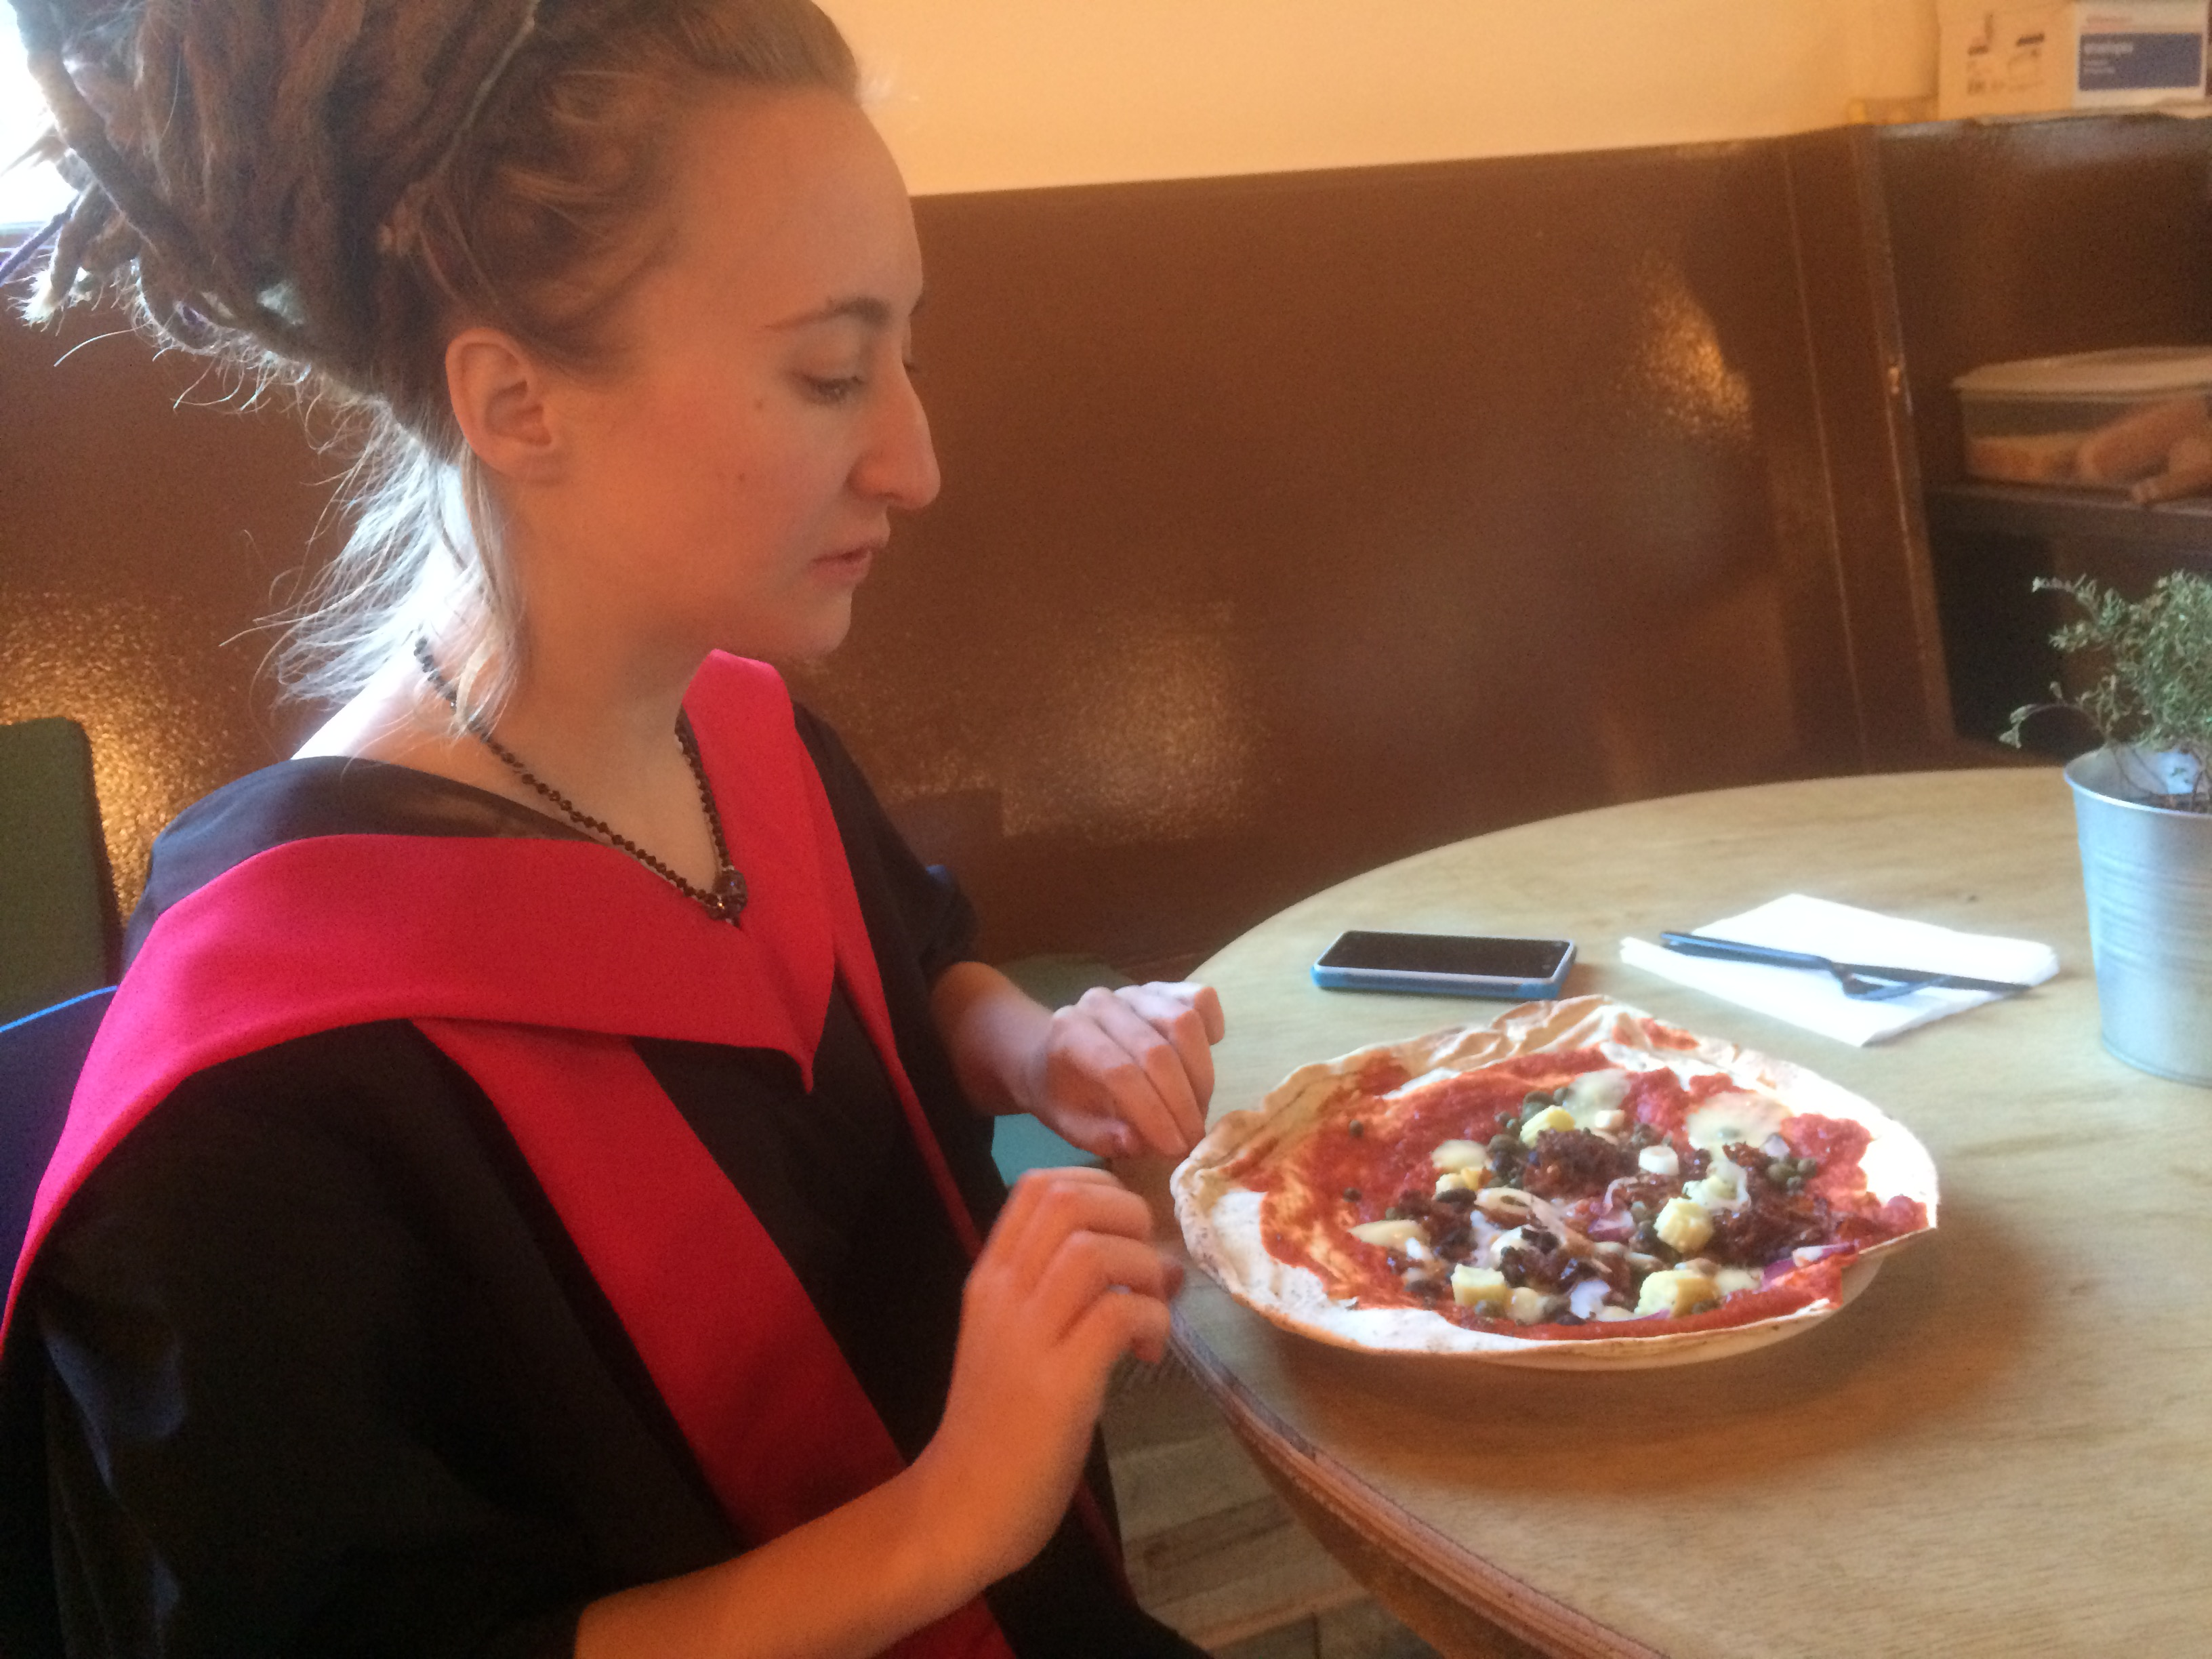 rhiaro in graduation robes sneaks up on unsuspecting flatbread